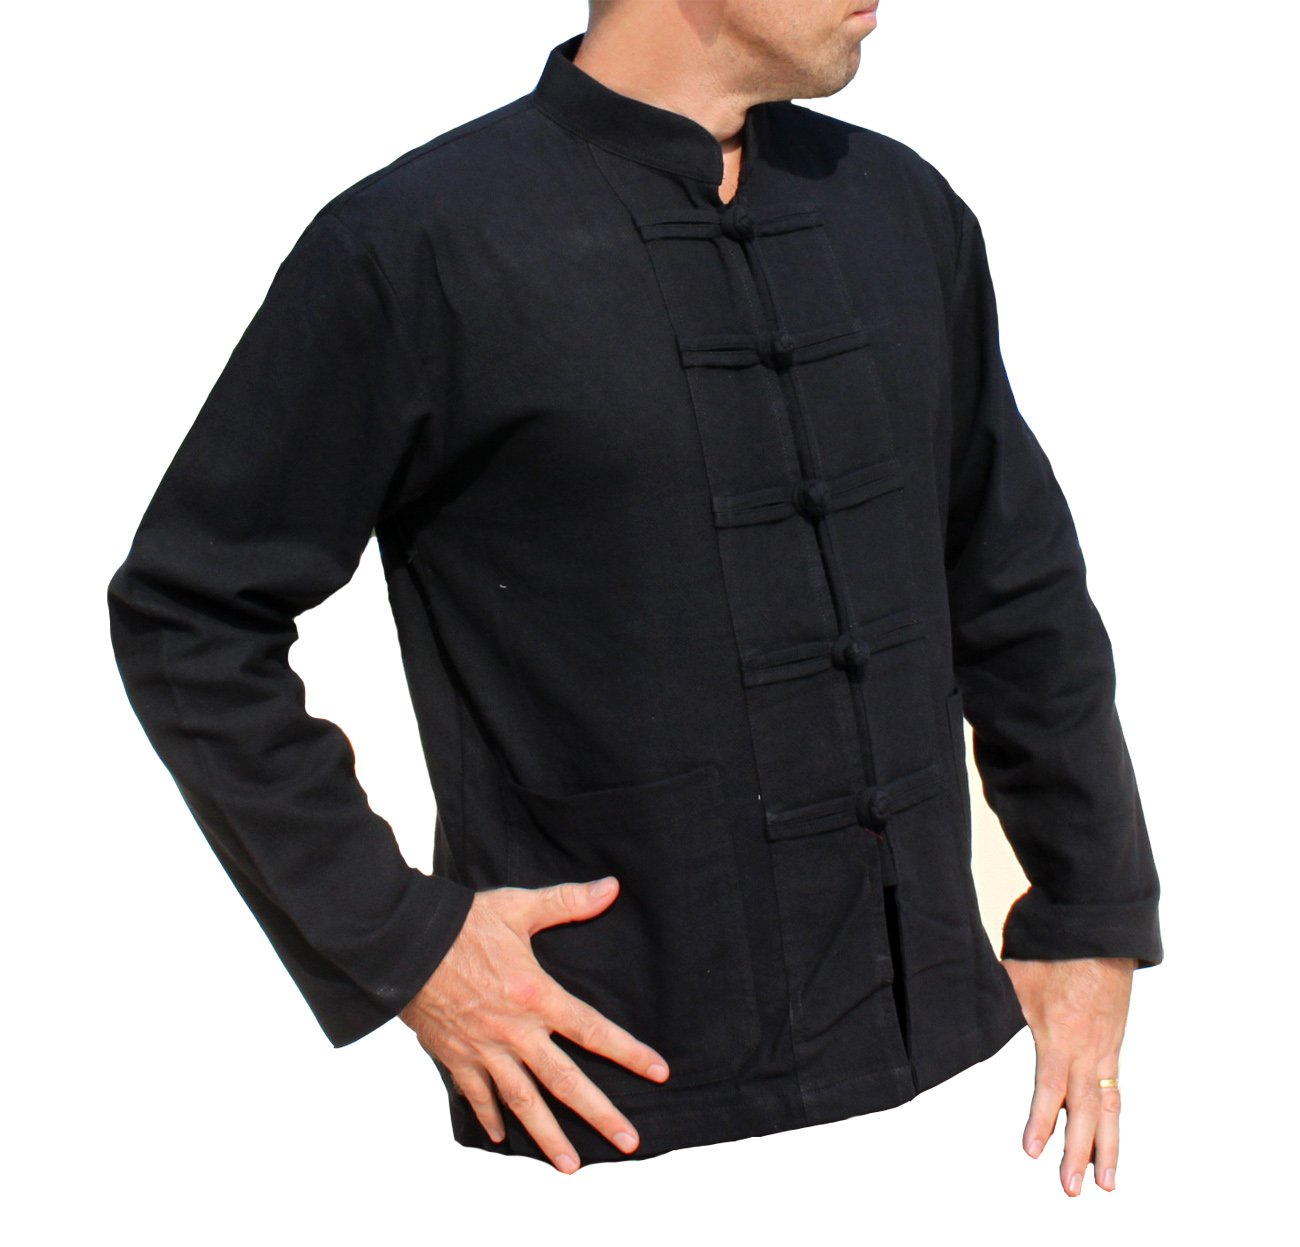 RaanPahMuang Thick Muang Cotton Frog Button Chinese Jacket Shirt Plus, XXXXXX-Large, Black